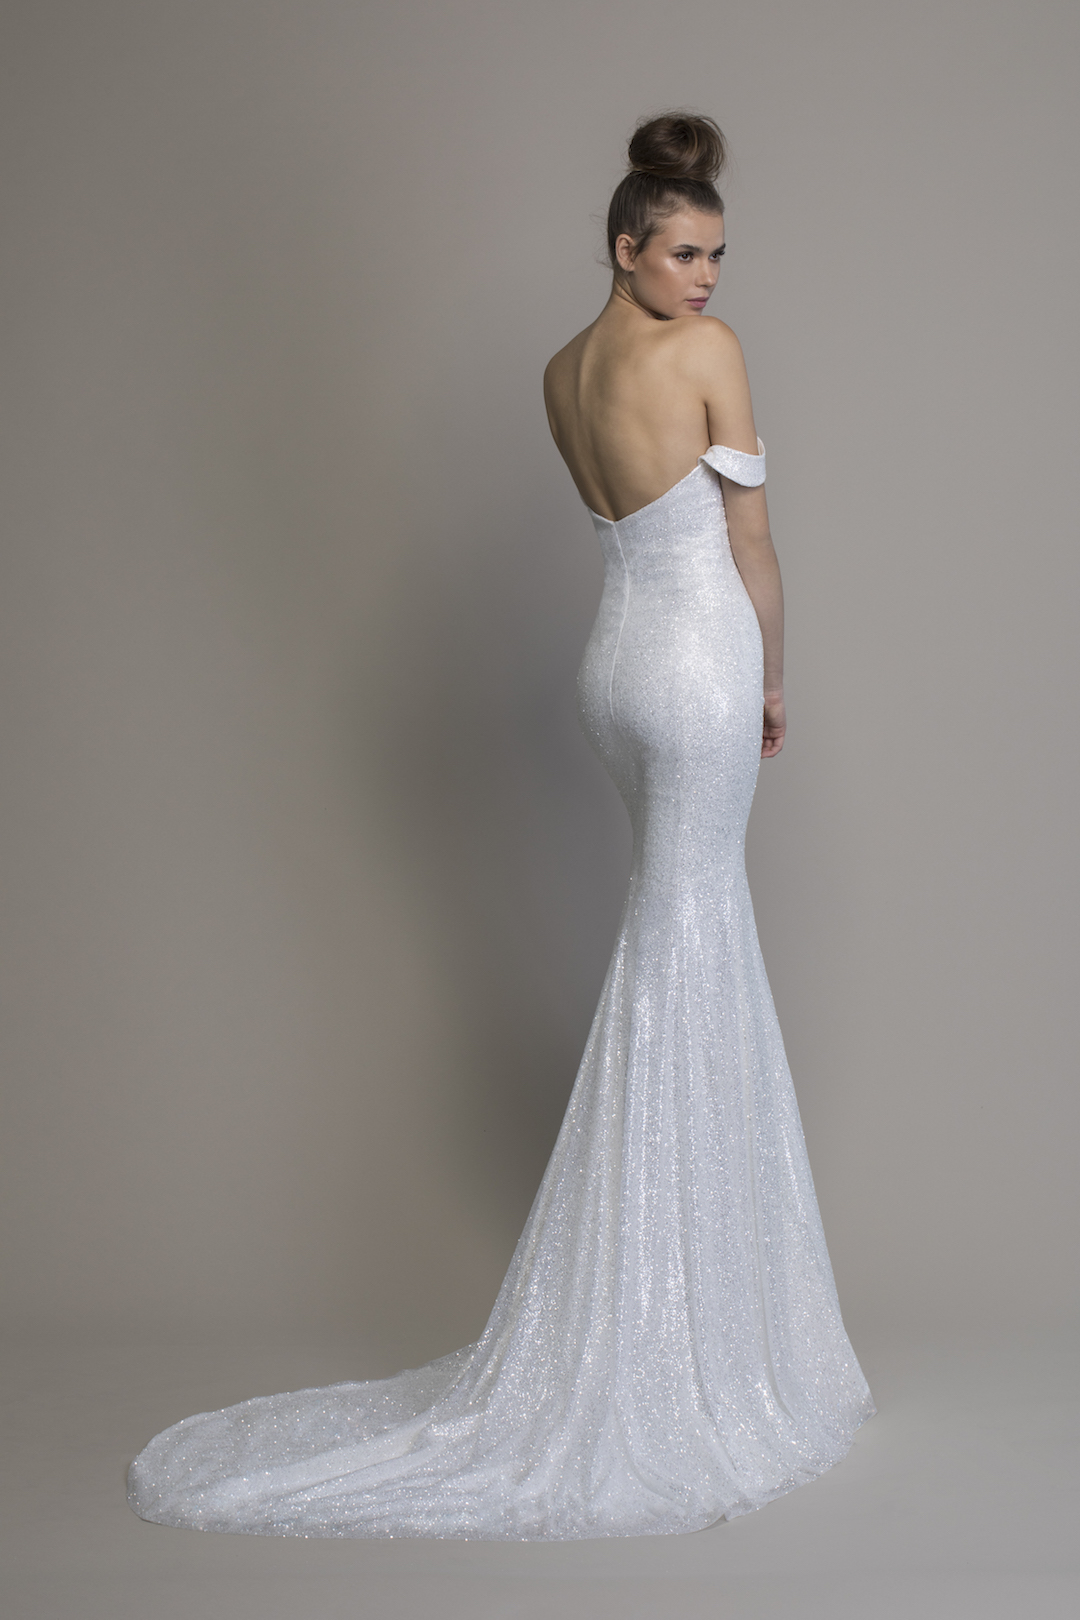 Pnina Tornai's new LOVE 2020 Collection is out! This is style 14770